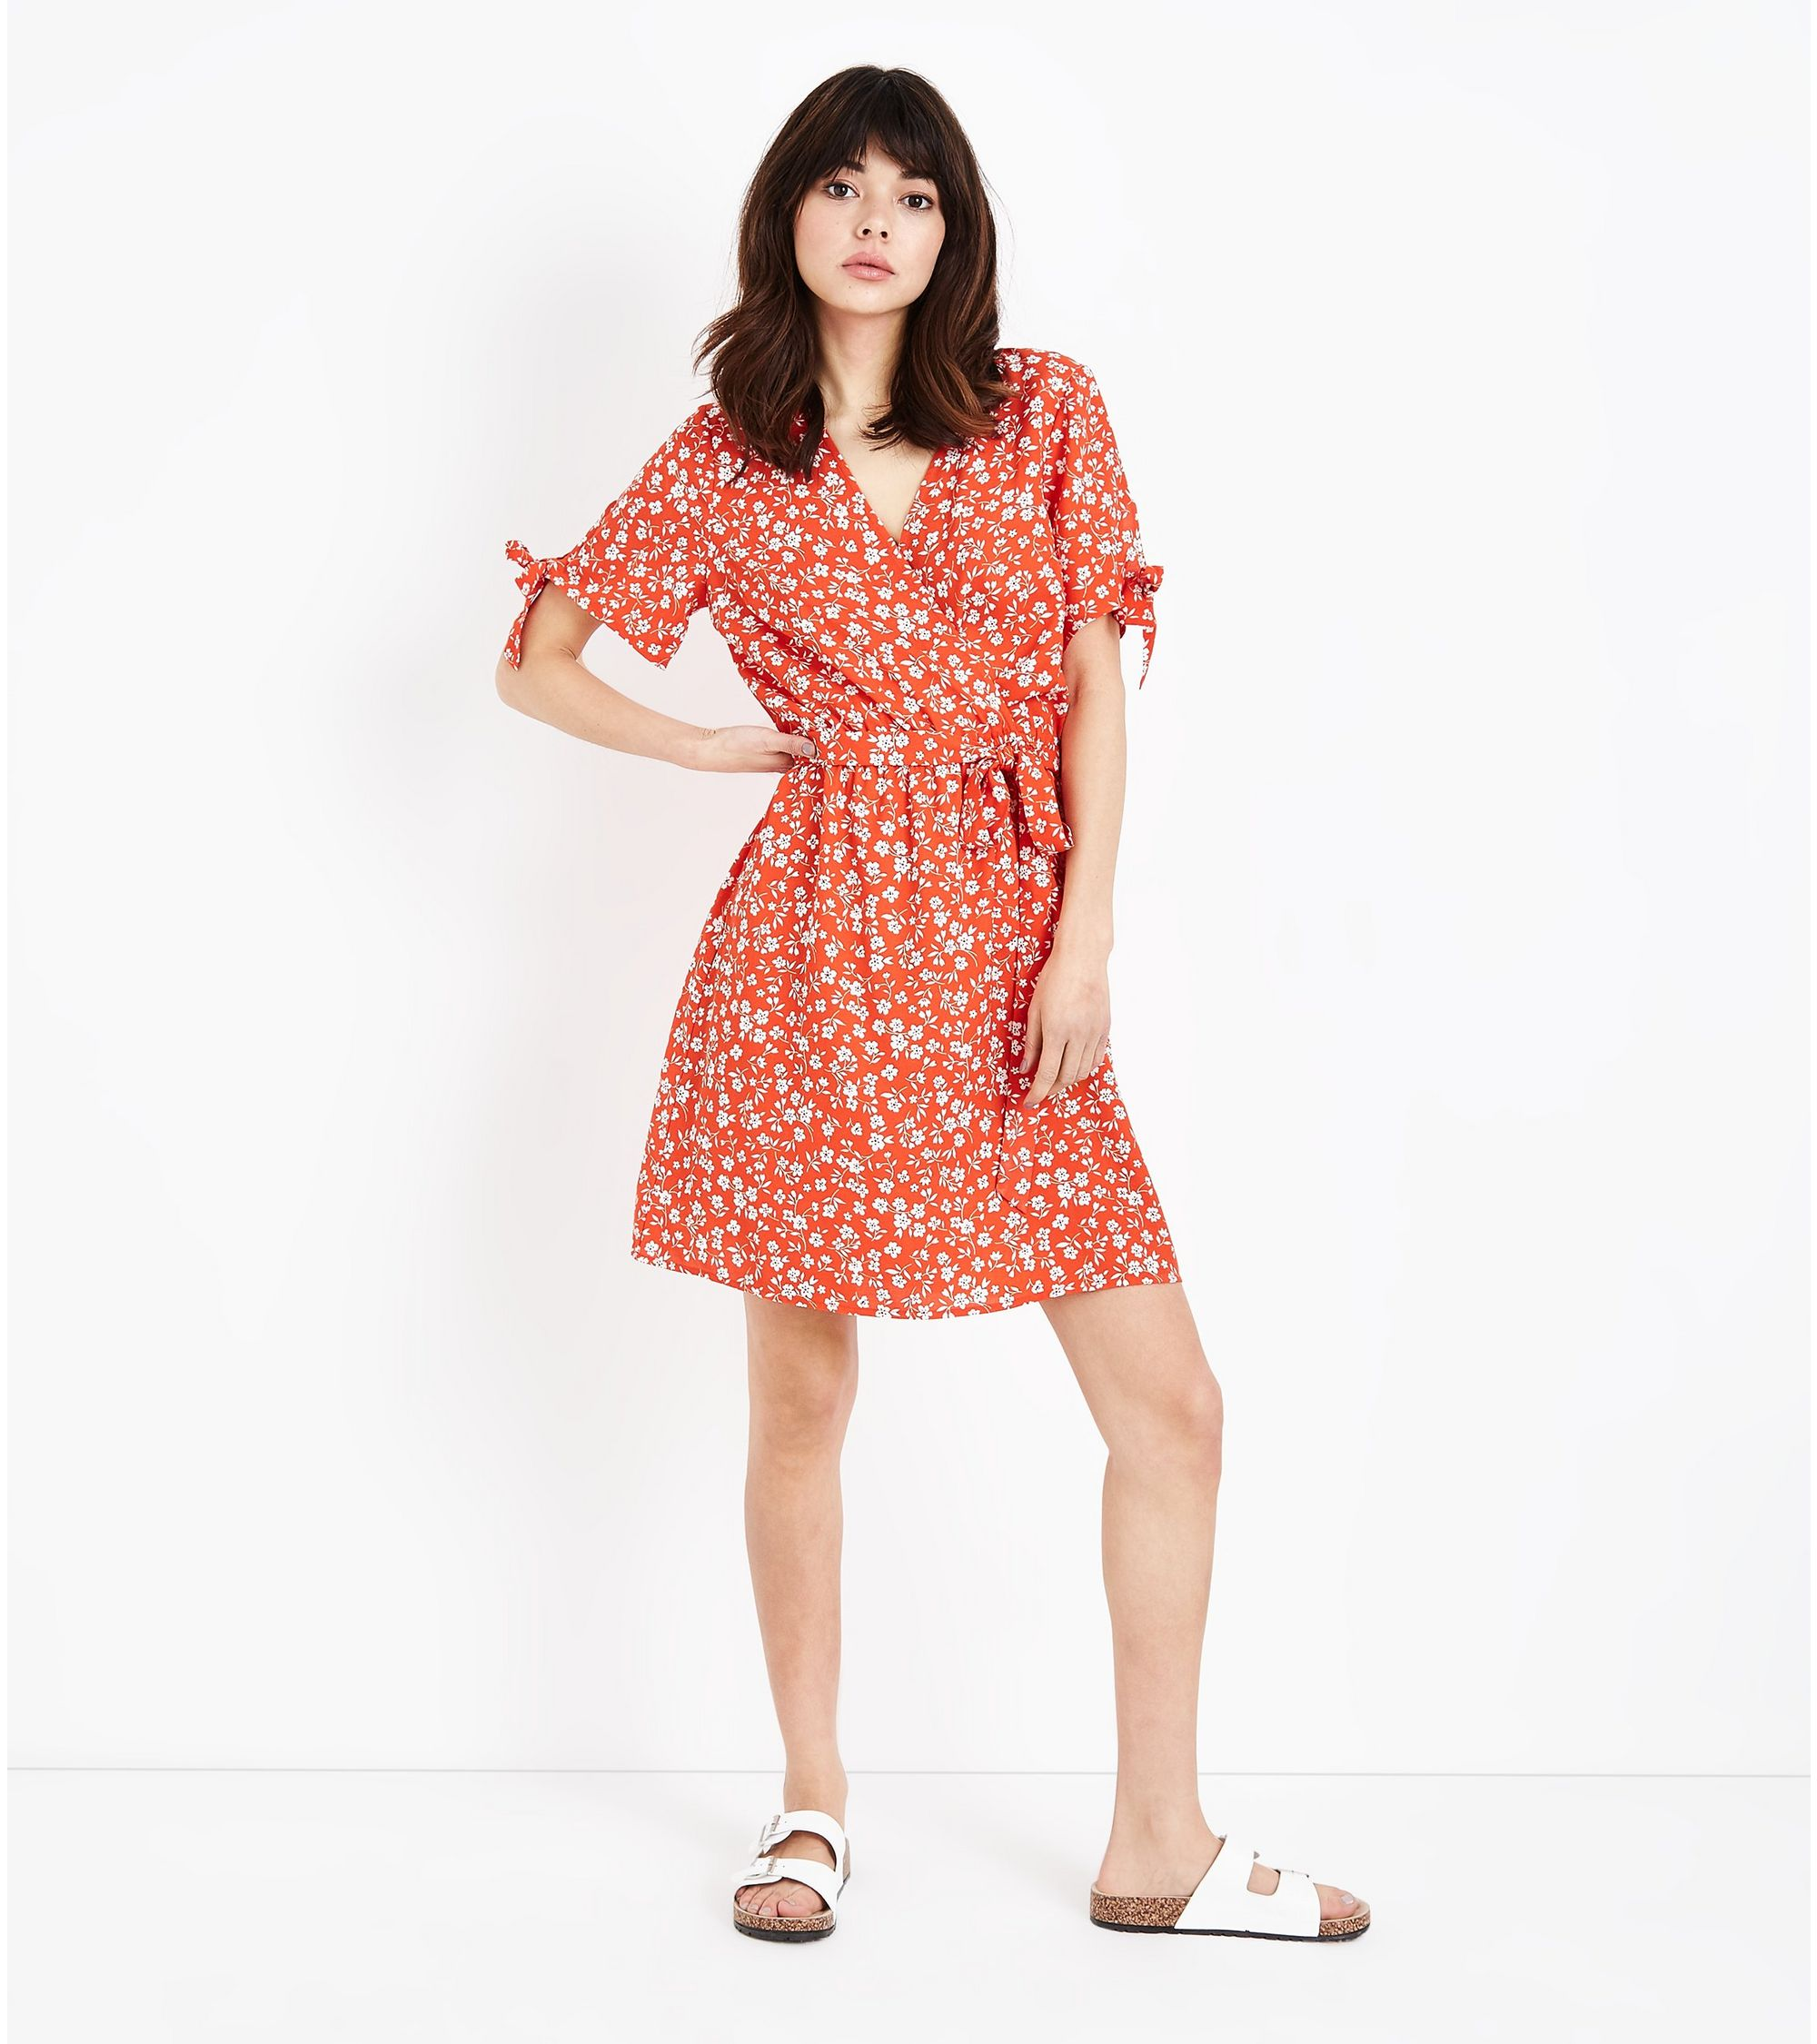 483acb4216302 New Look Red Ditsy Floral Print Wrap Dress at £9 | love the brands